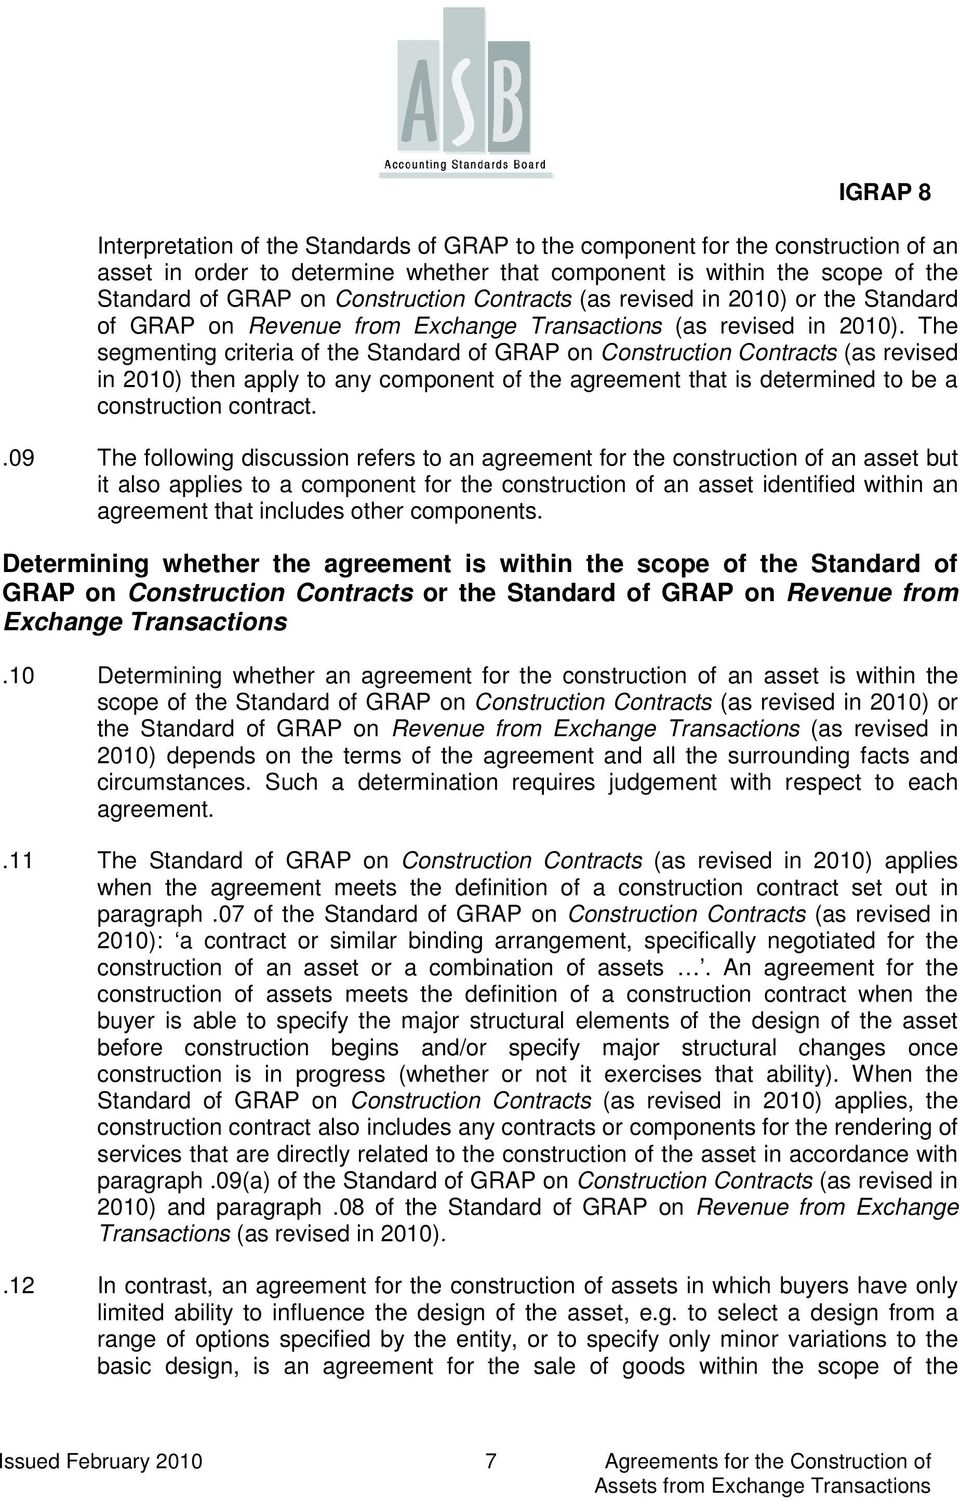 The segmenting criteria of the Standard of GRAP on Construction Contracts (as revised in 2010) then apply to any component of the agreement that is determined to be a construction contract.